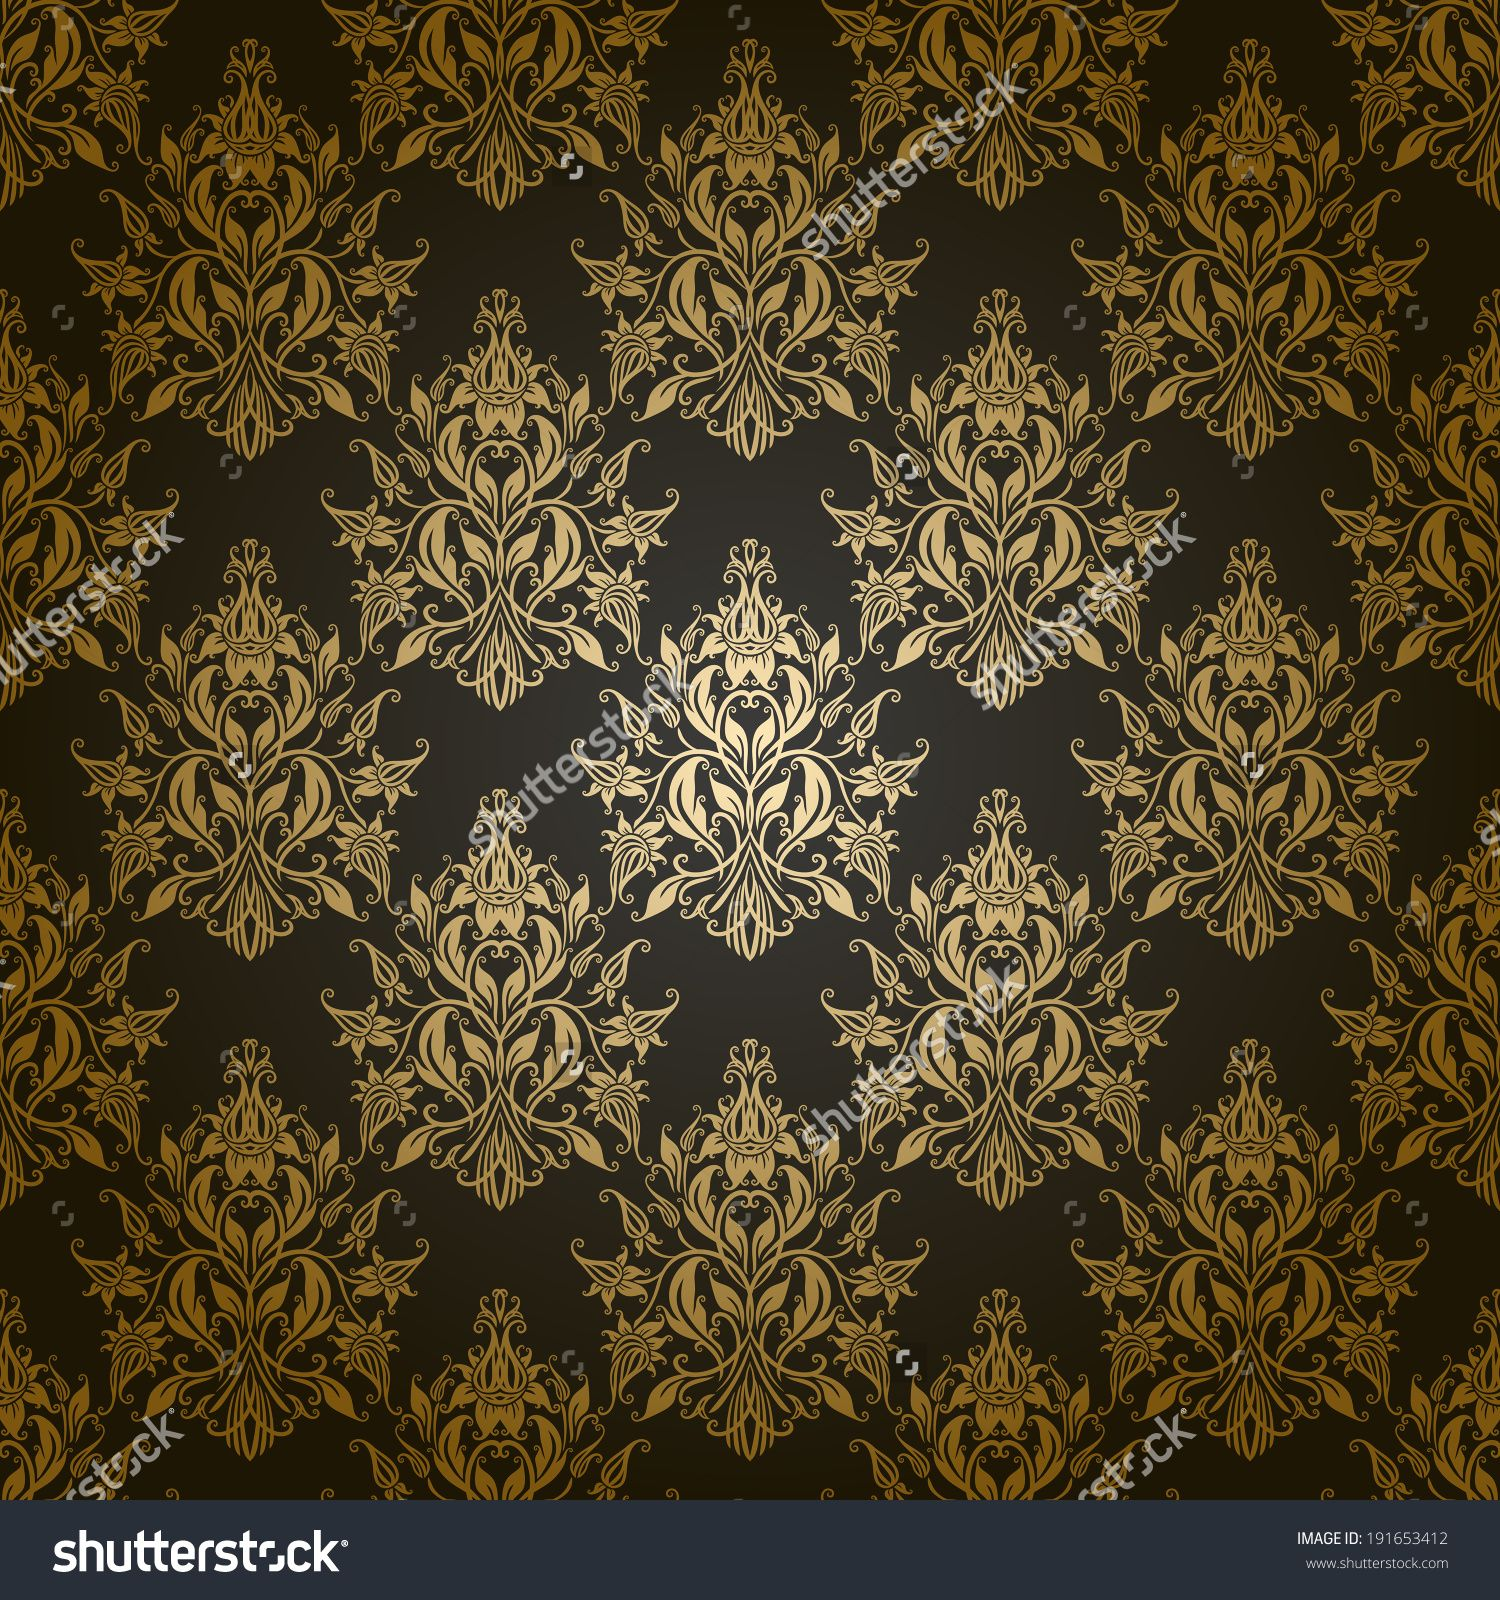 Damask Seamless Floral Pattern Royal Wallpaper Flowers On A Gray Background